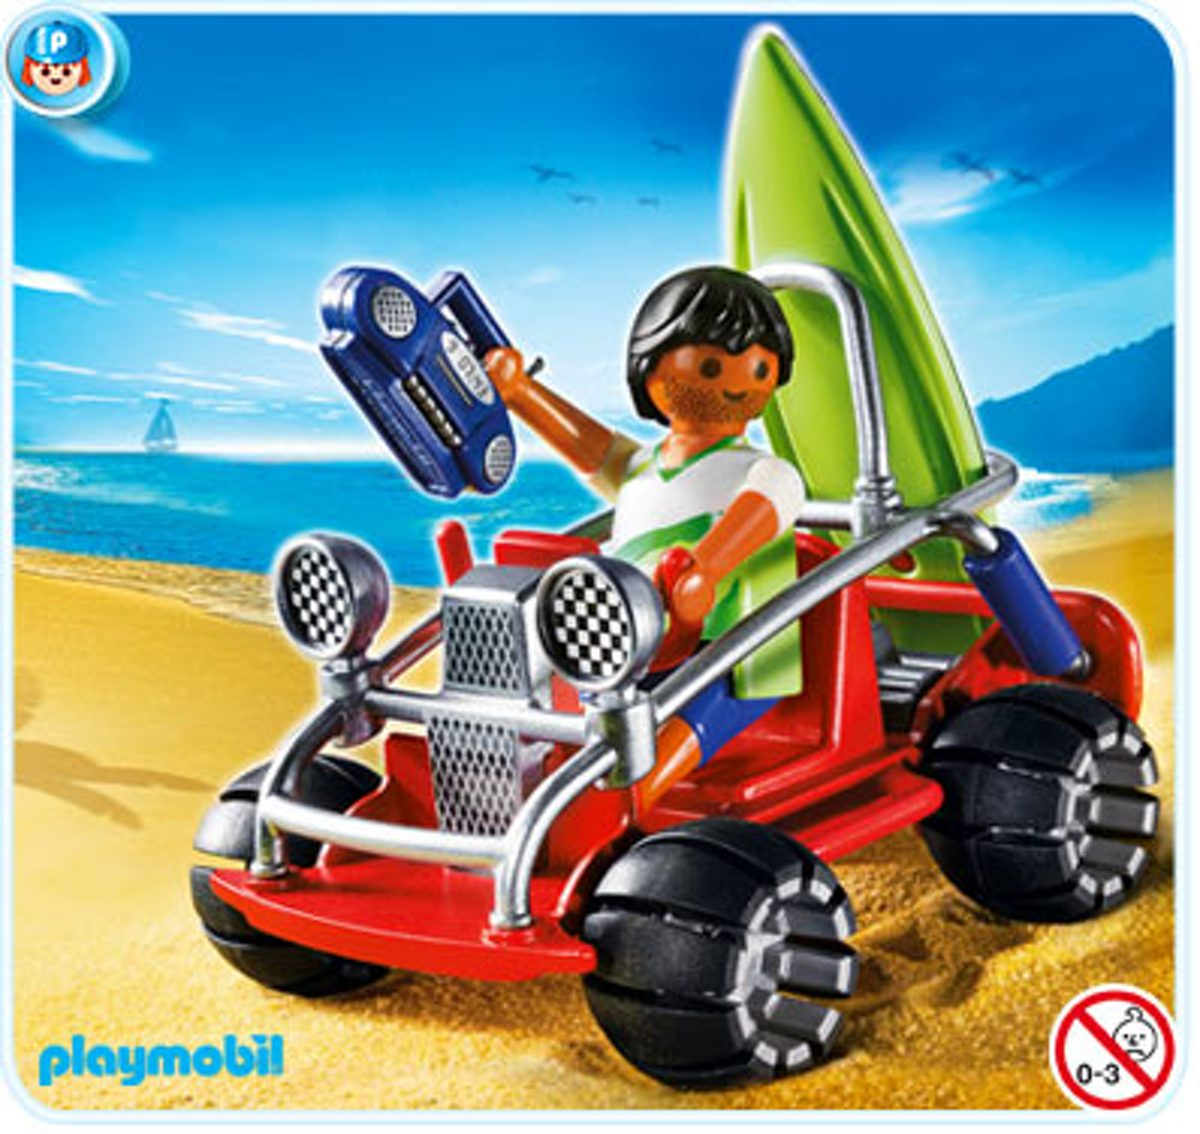 Playmobil Strandbuggy - 4863